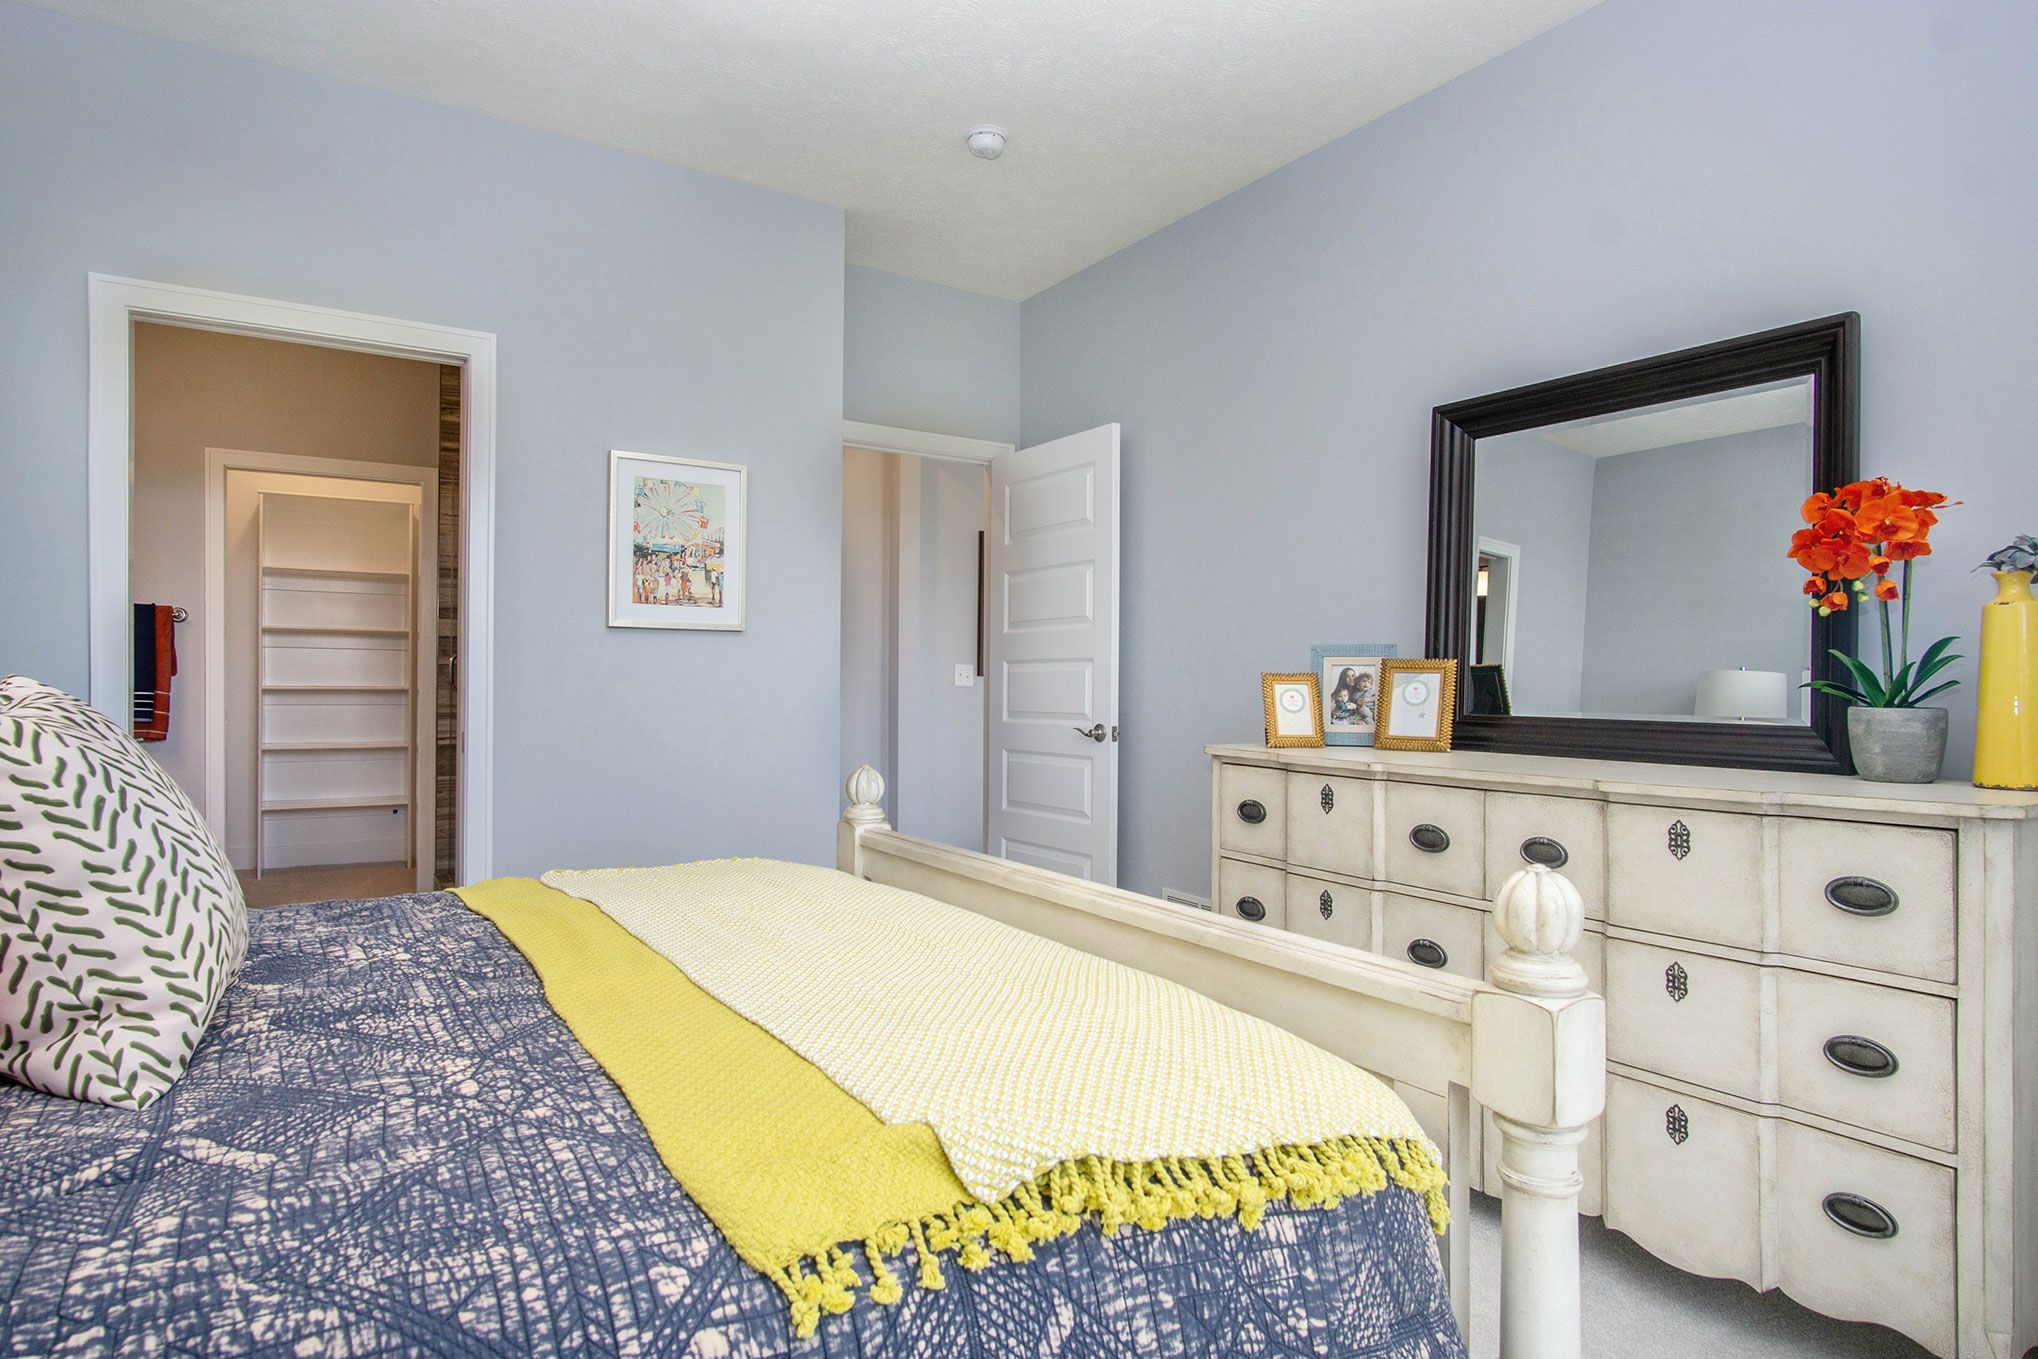 Bedroom featured in The Pentwater II By Eastbrook Homes Inc. in Grand Rapids, MI